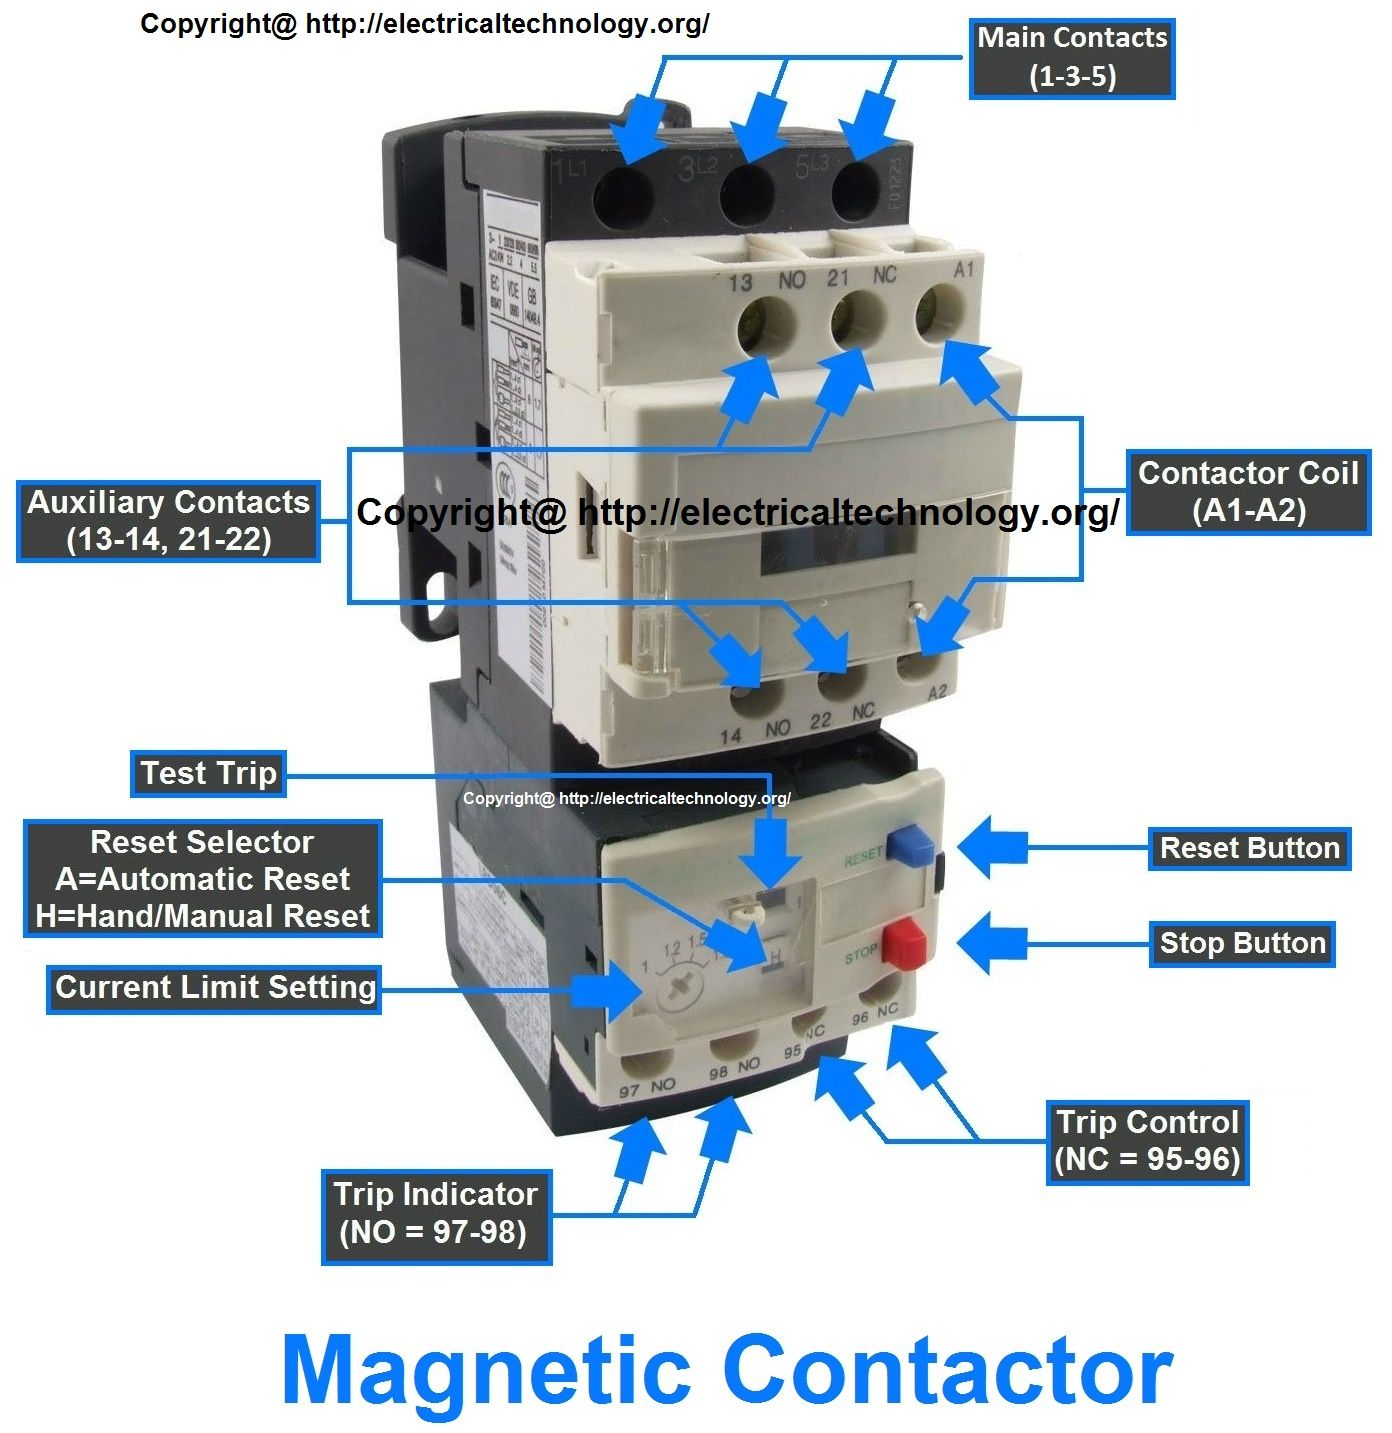 f465dee1d283abe0d5eeb4d3a000fdd3 rated characteristics of electrical contactors electro magnetic electrical contactor wiring diagram at gsmportal.co